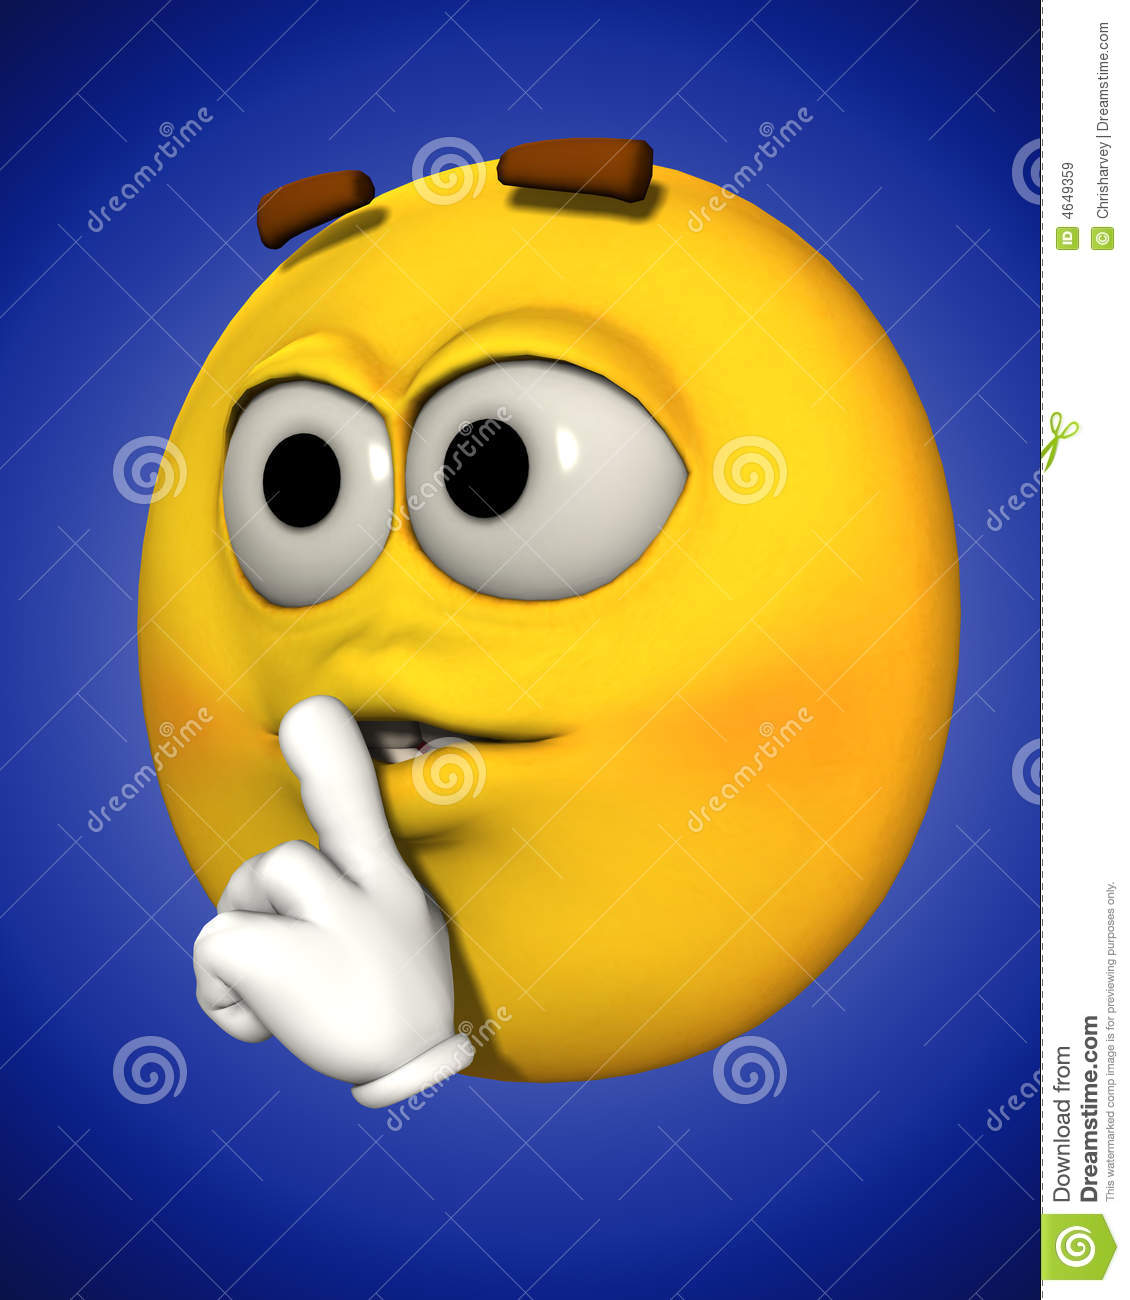 Conceptual image of a cartoon face that is telling people to be